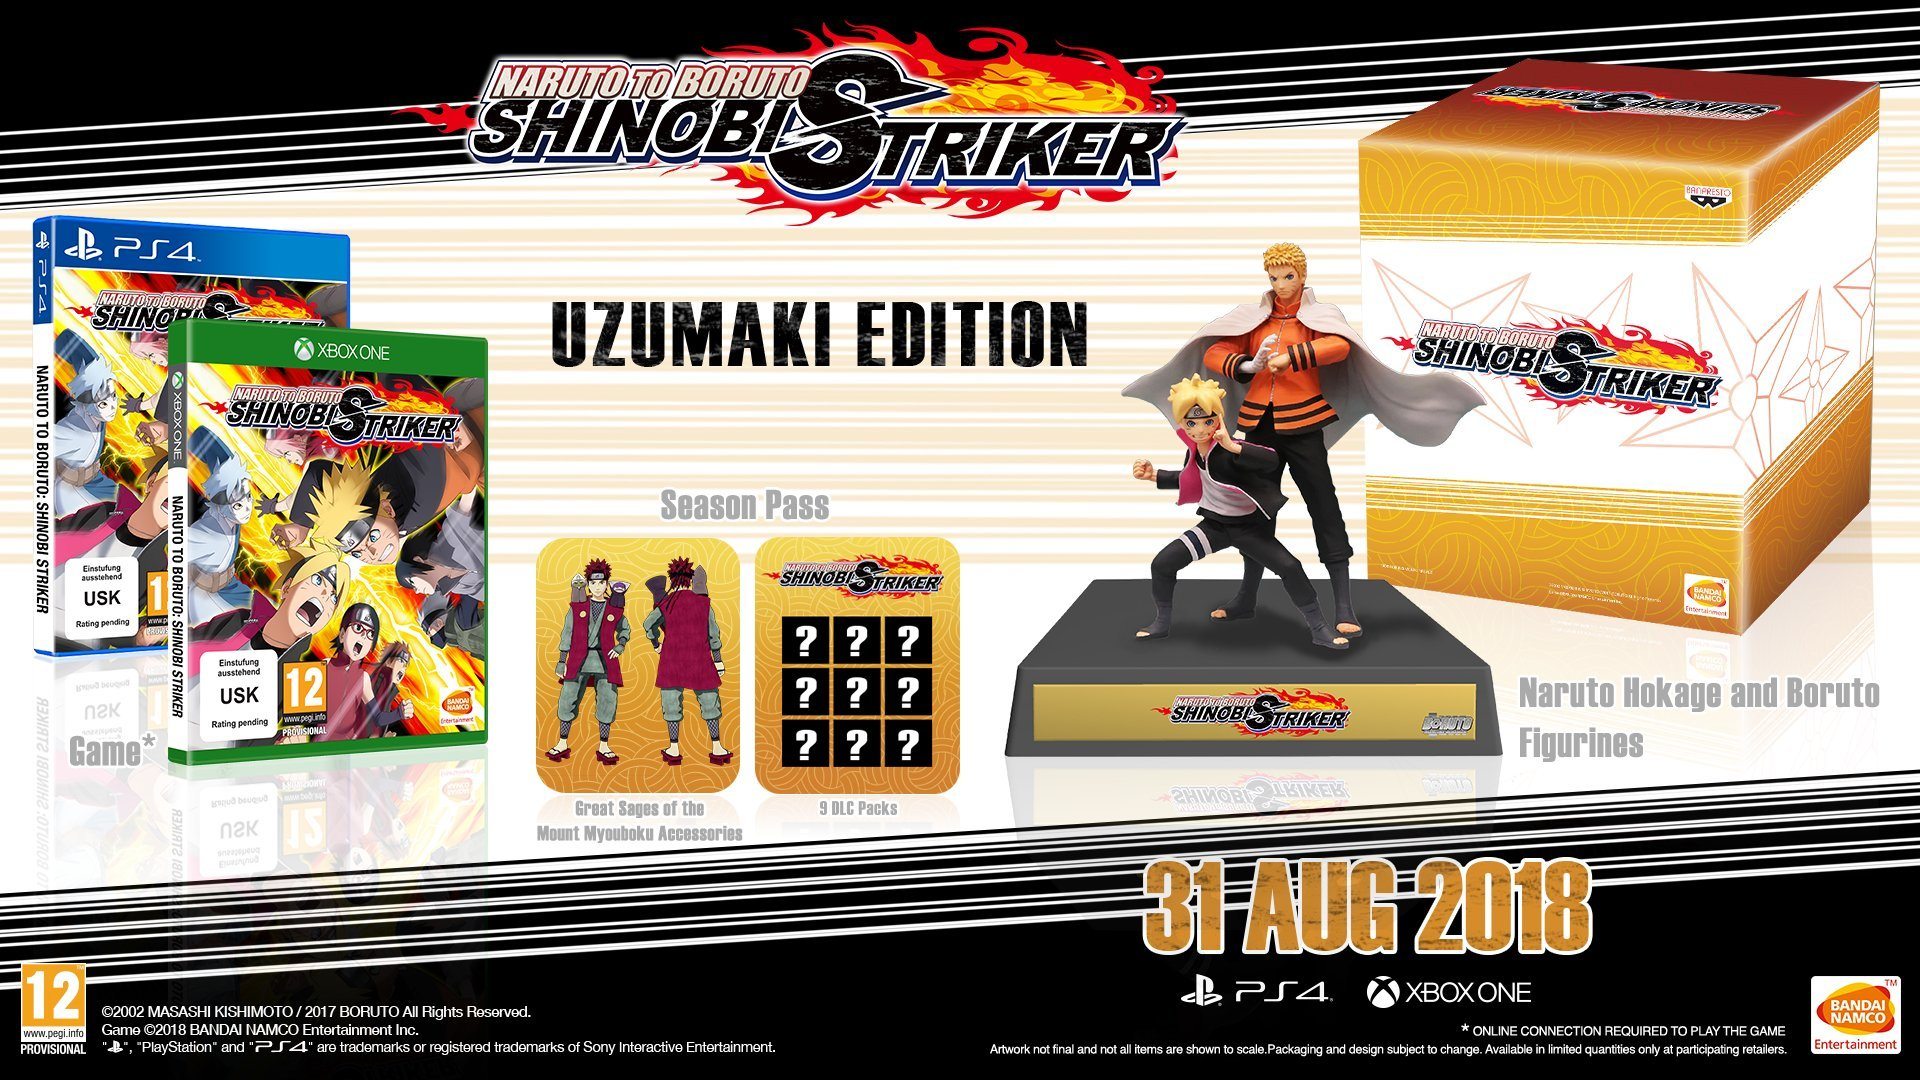 Amazon.com: Naruto to Boruto Shinobi Striker Collectors ...